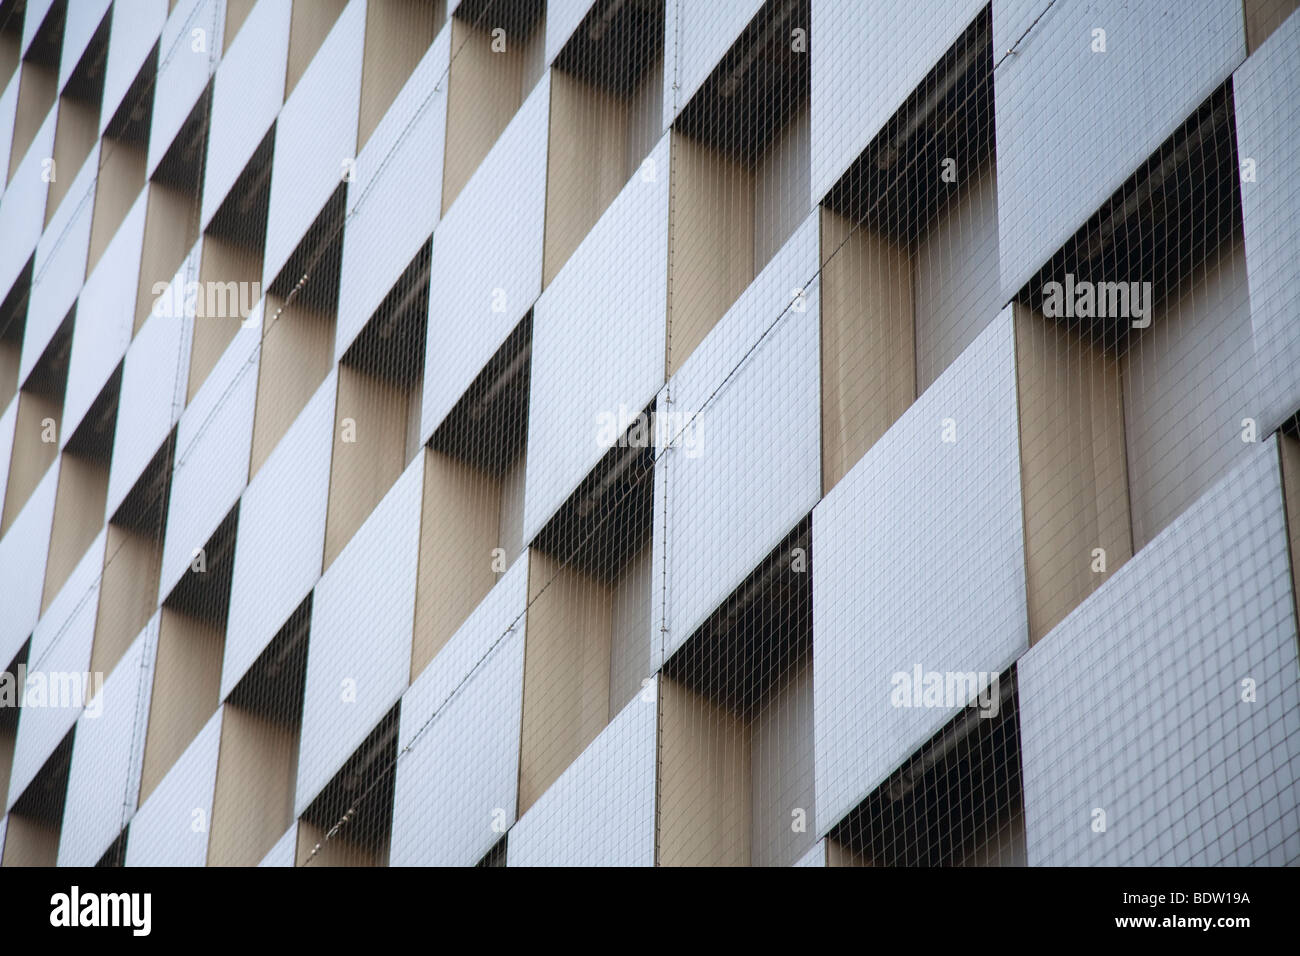 facade of business building, bavaria, germany Stock Photo